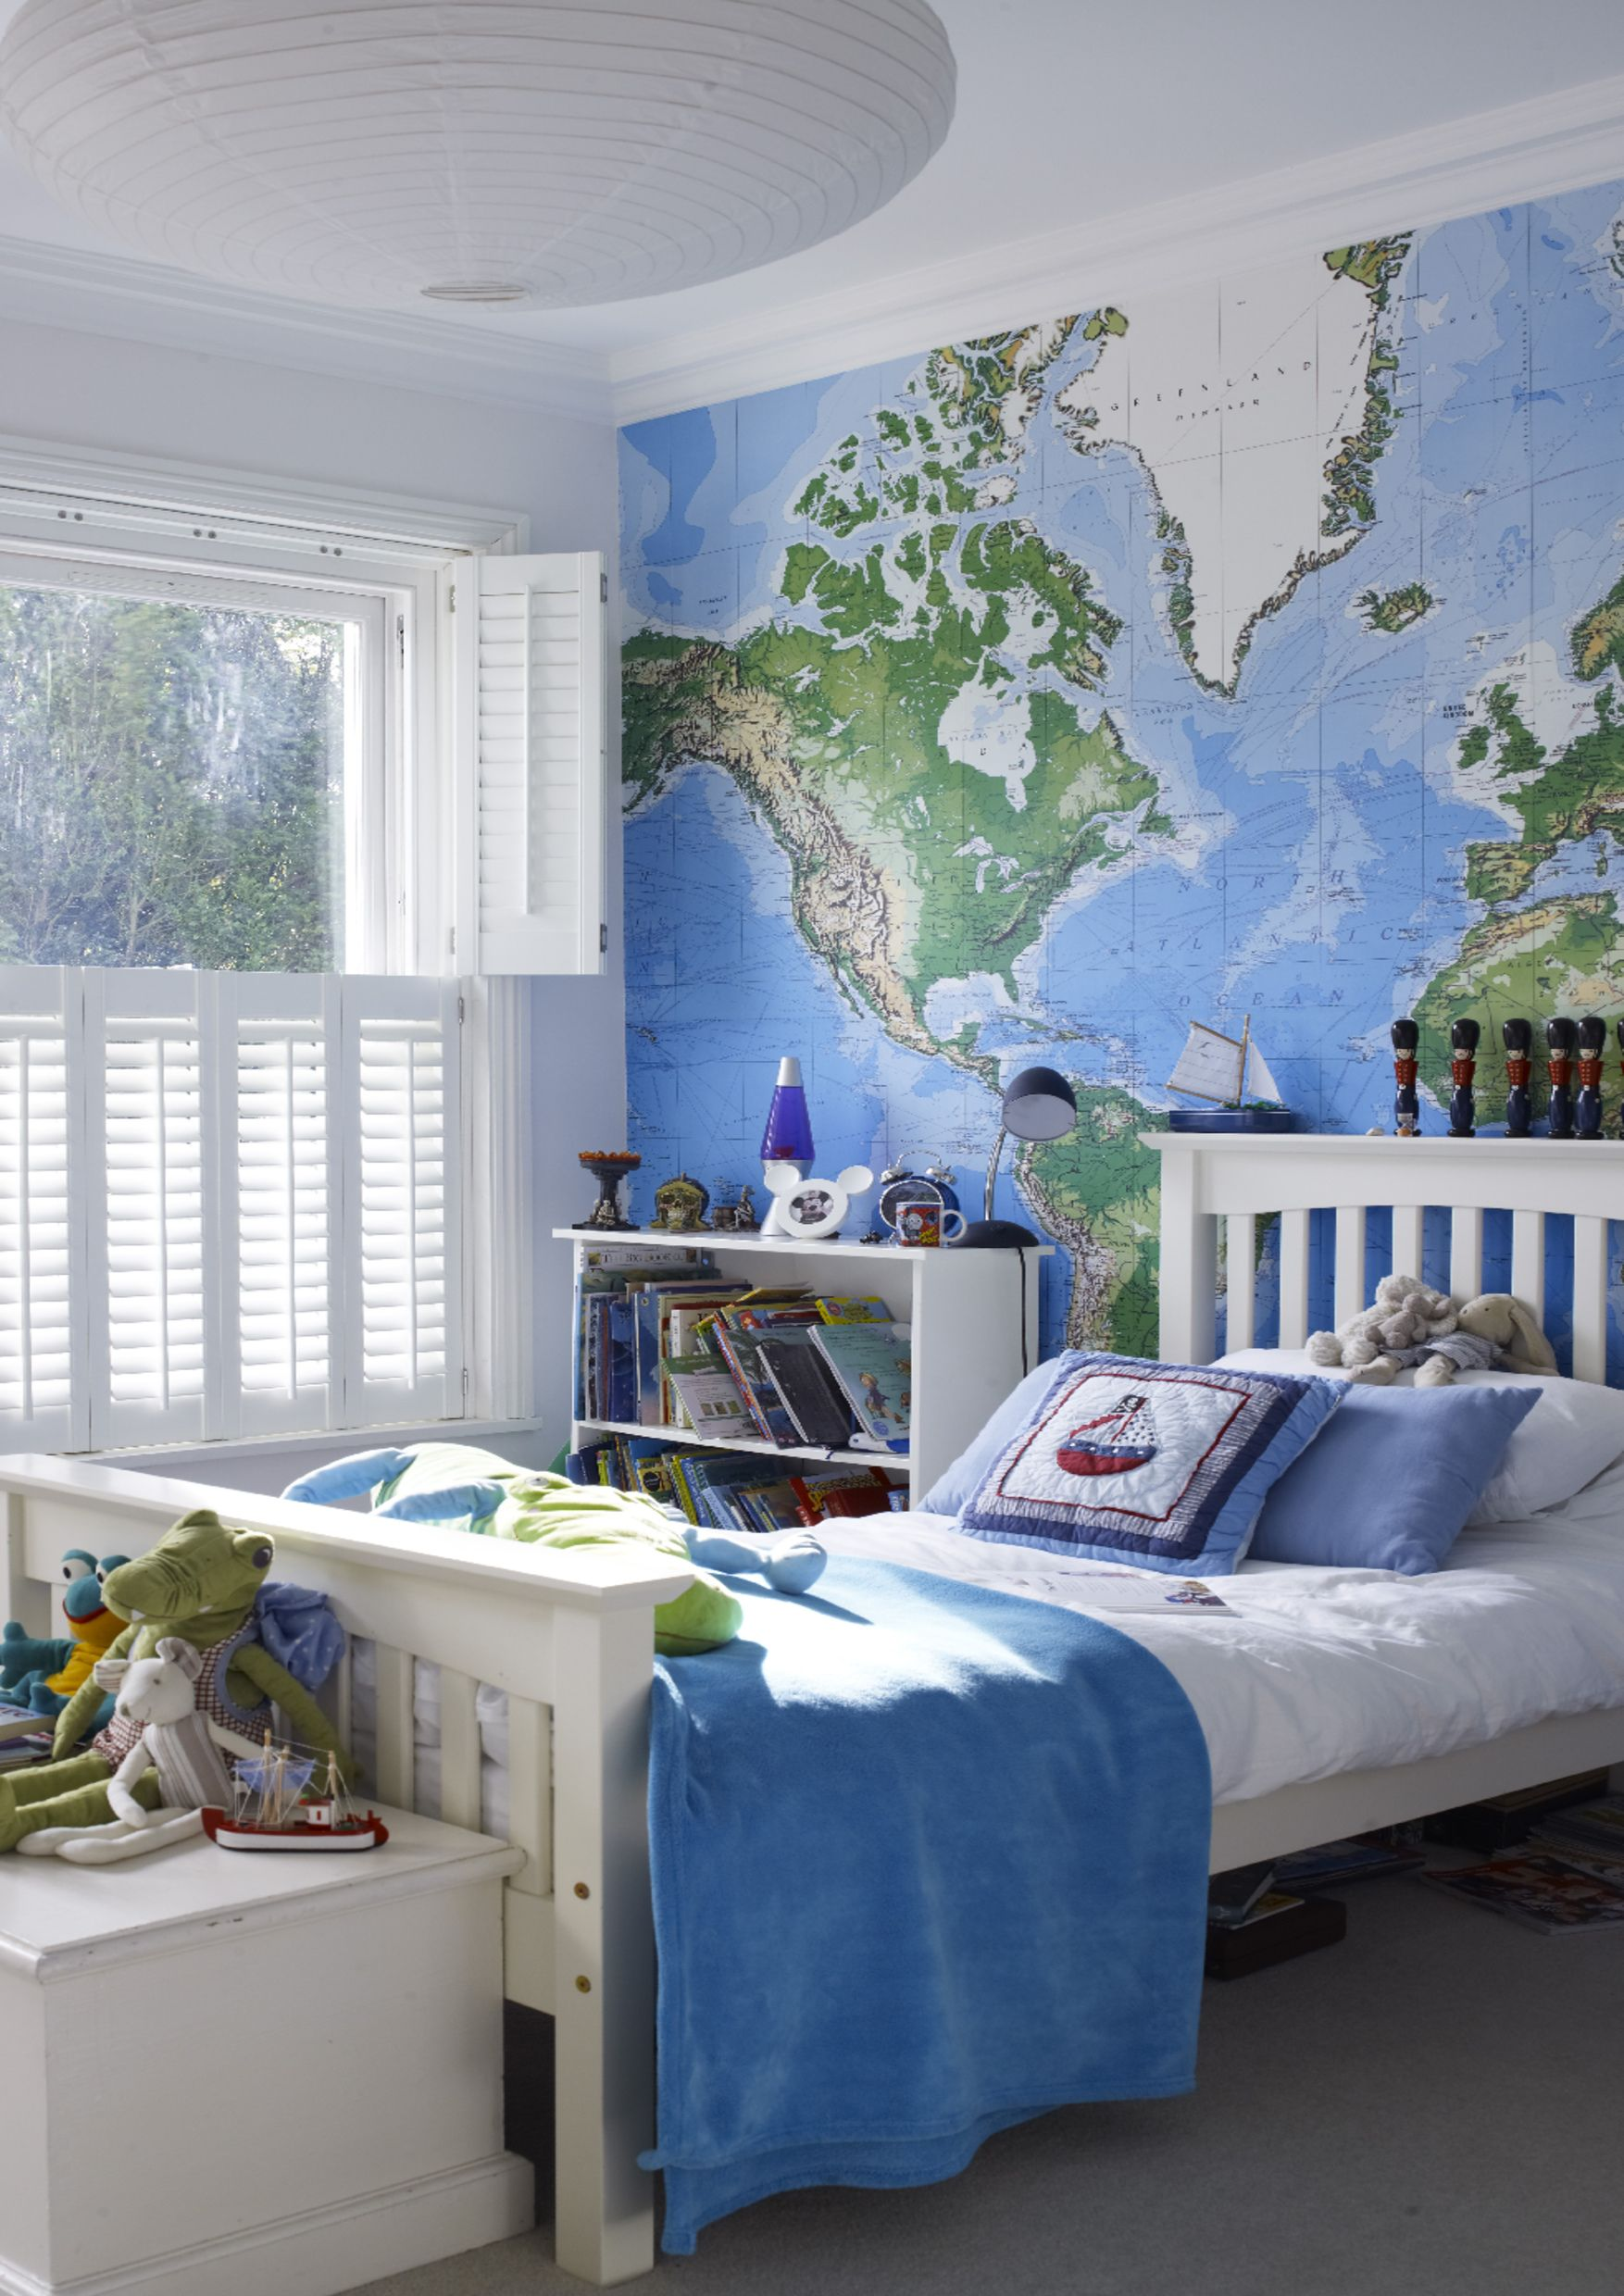 Add wanderlust into your room with giant map wall mural